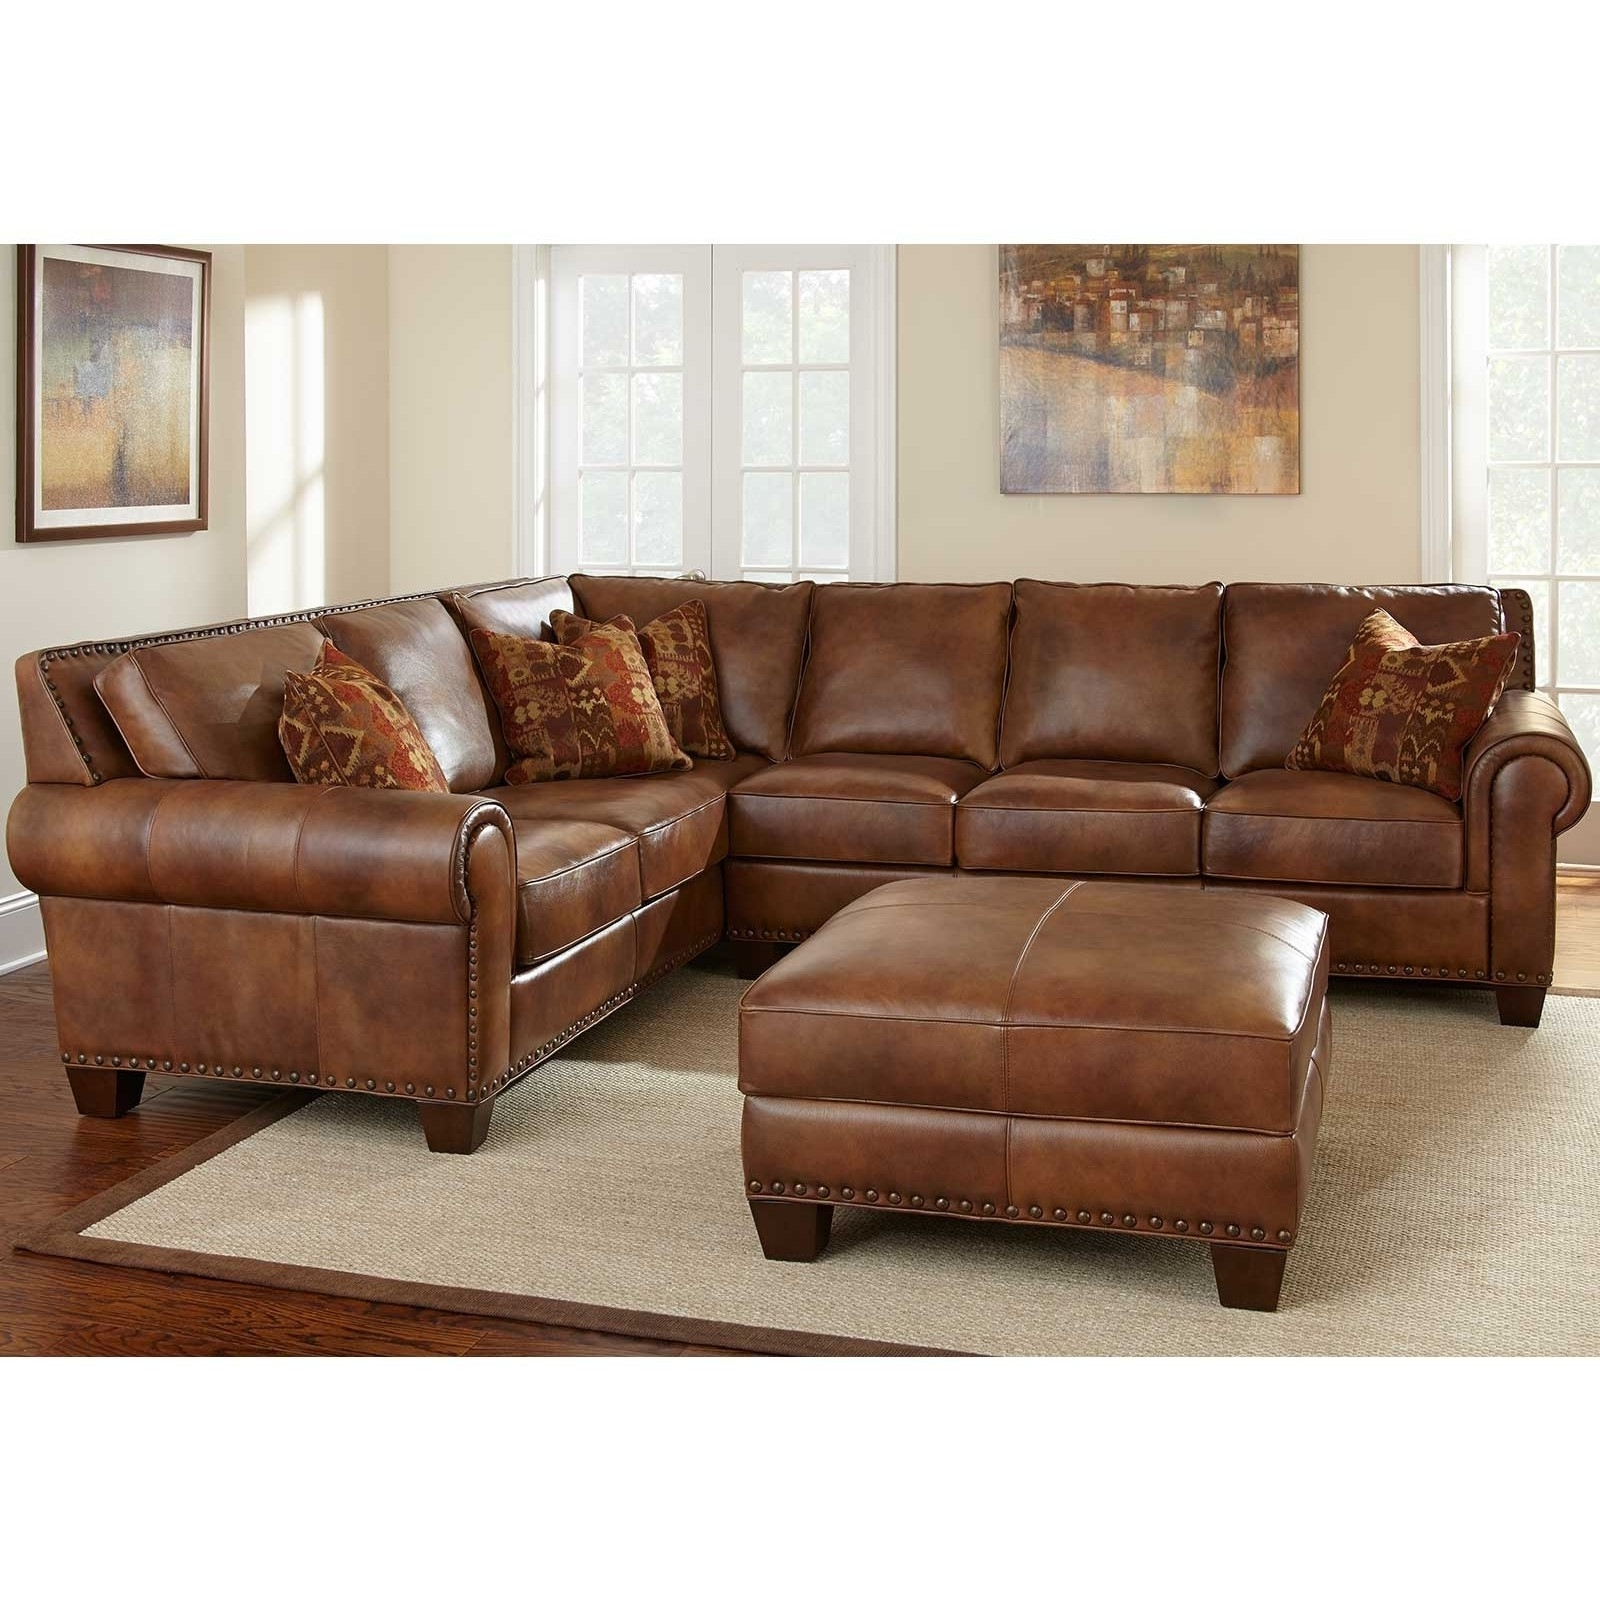 Most Recent Jcpenney Sectional Sofas Inside Microfiber Sectional Sofas For Sale – Hotelsbacau (View 13 of 20)